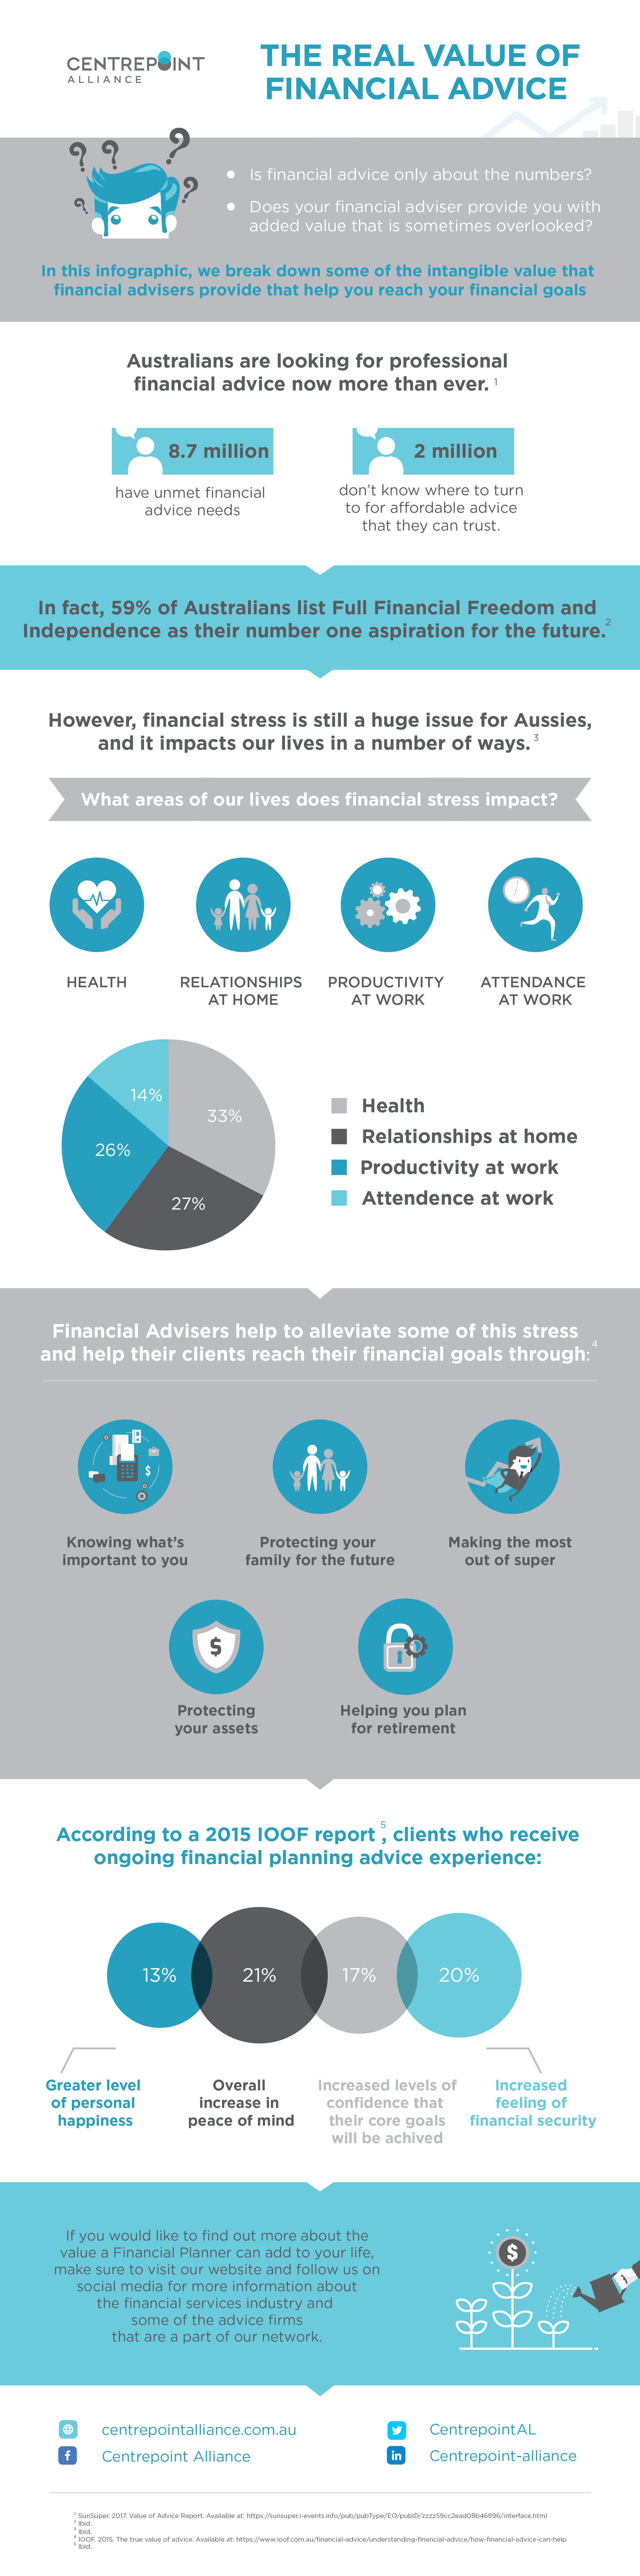 Infographic - The Real Value of Financial Advice